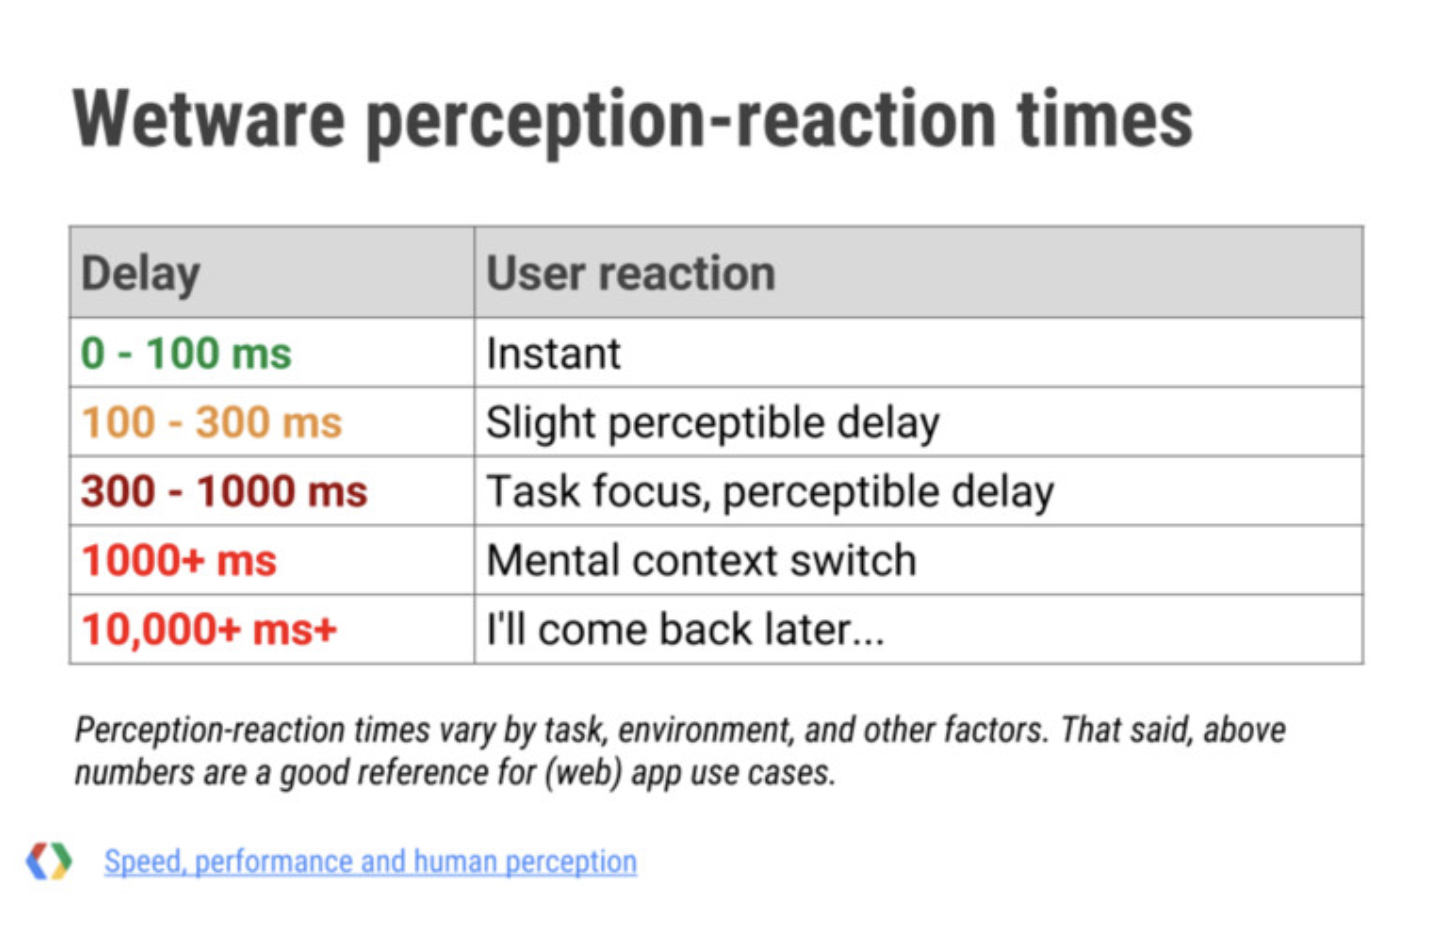 Slide from amazing talk about performance and human perception by Ilya Grigorik https://www.youtube.com/watch?v=7ubJzEi3HuA